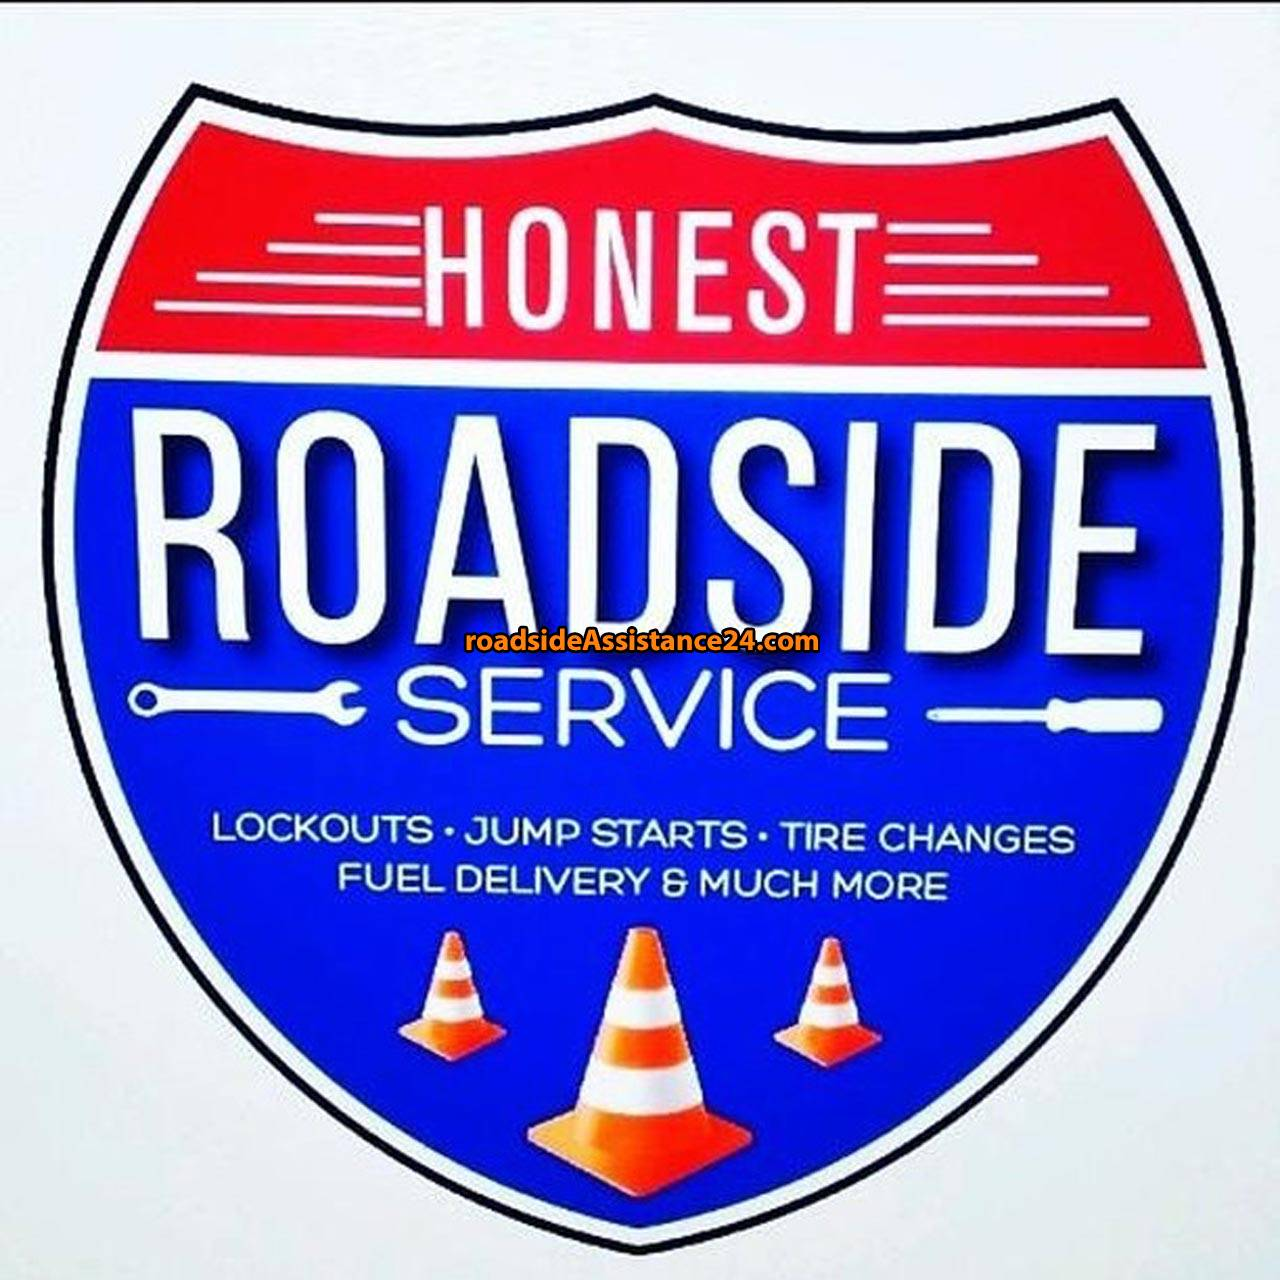 Honest Roadside Service